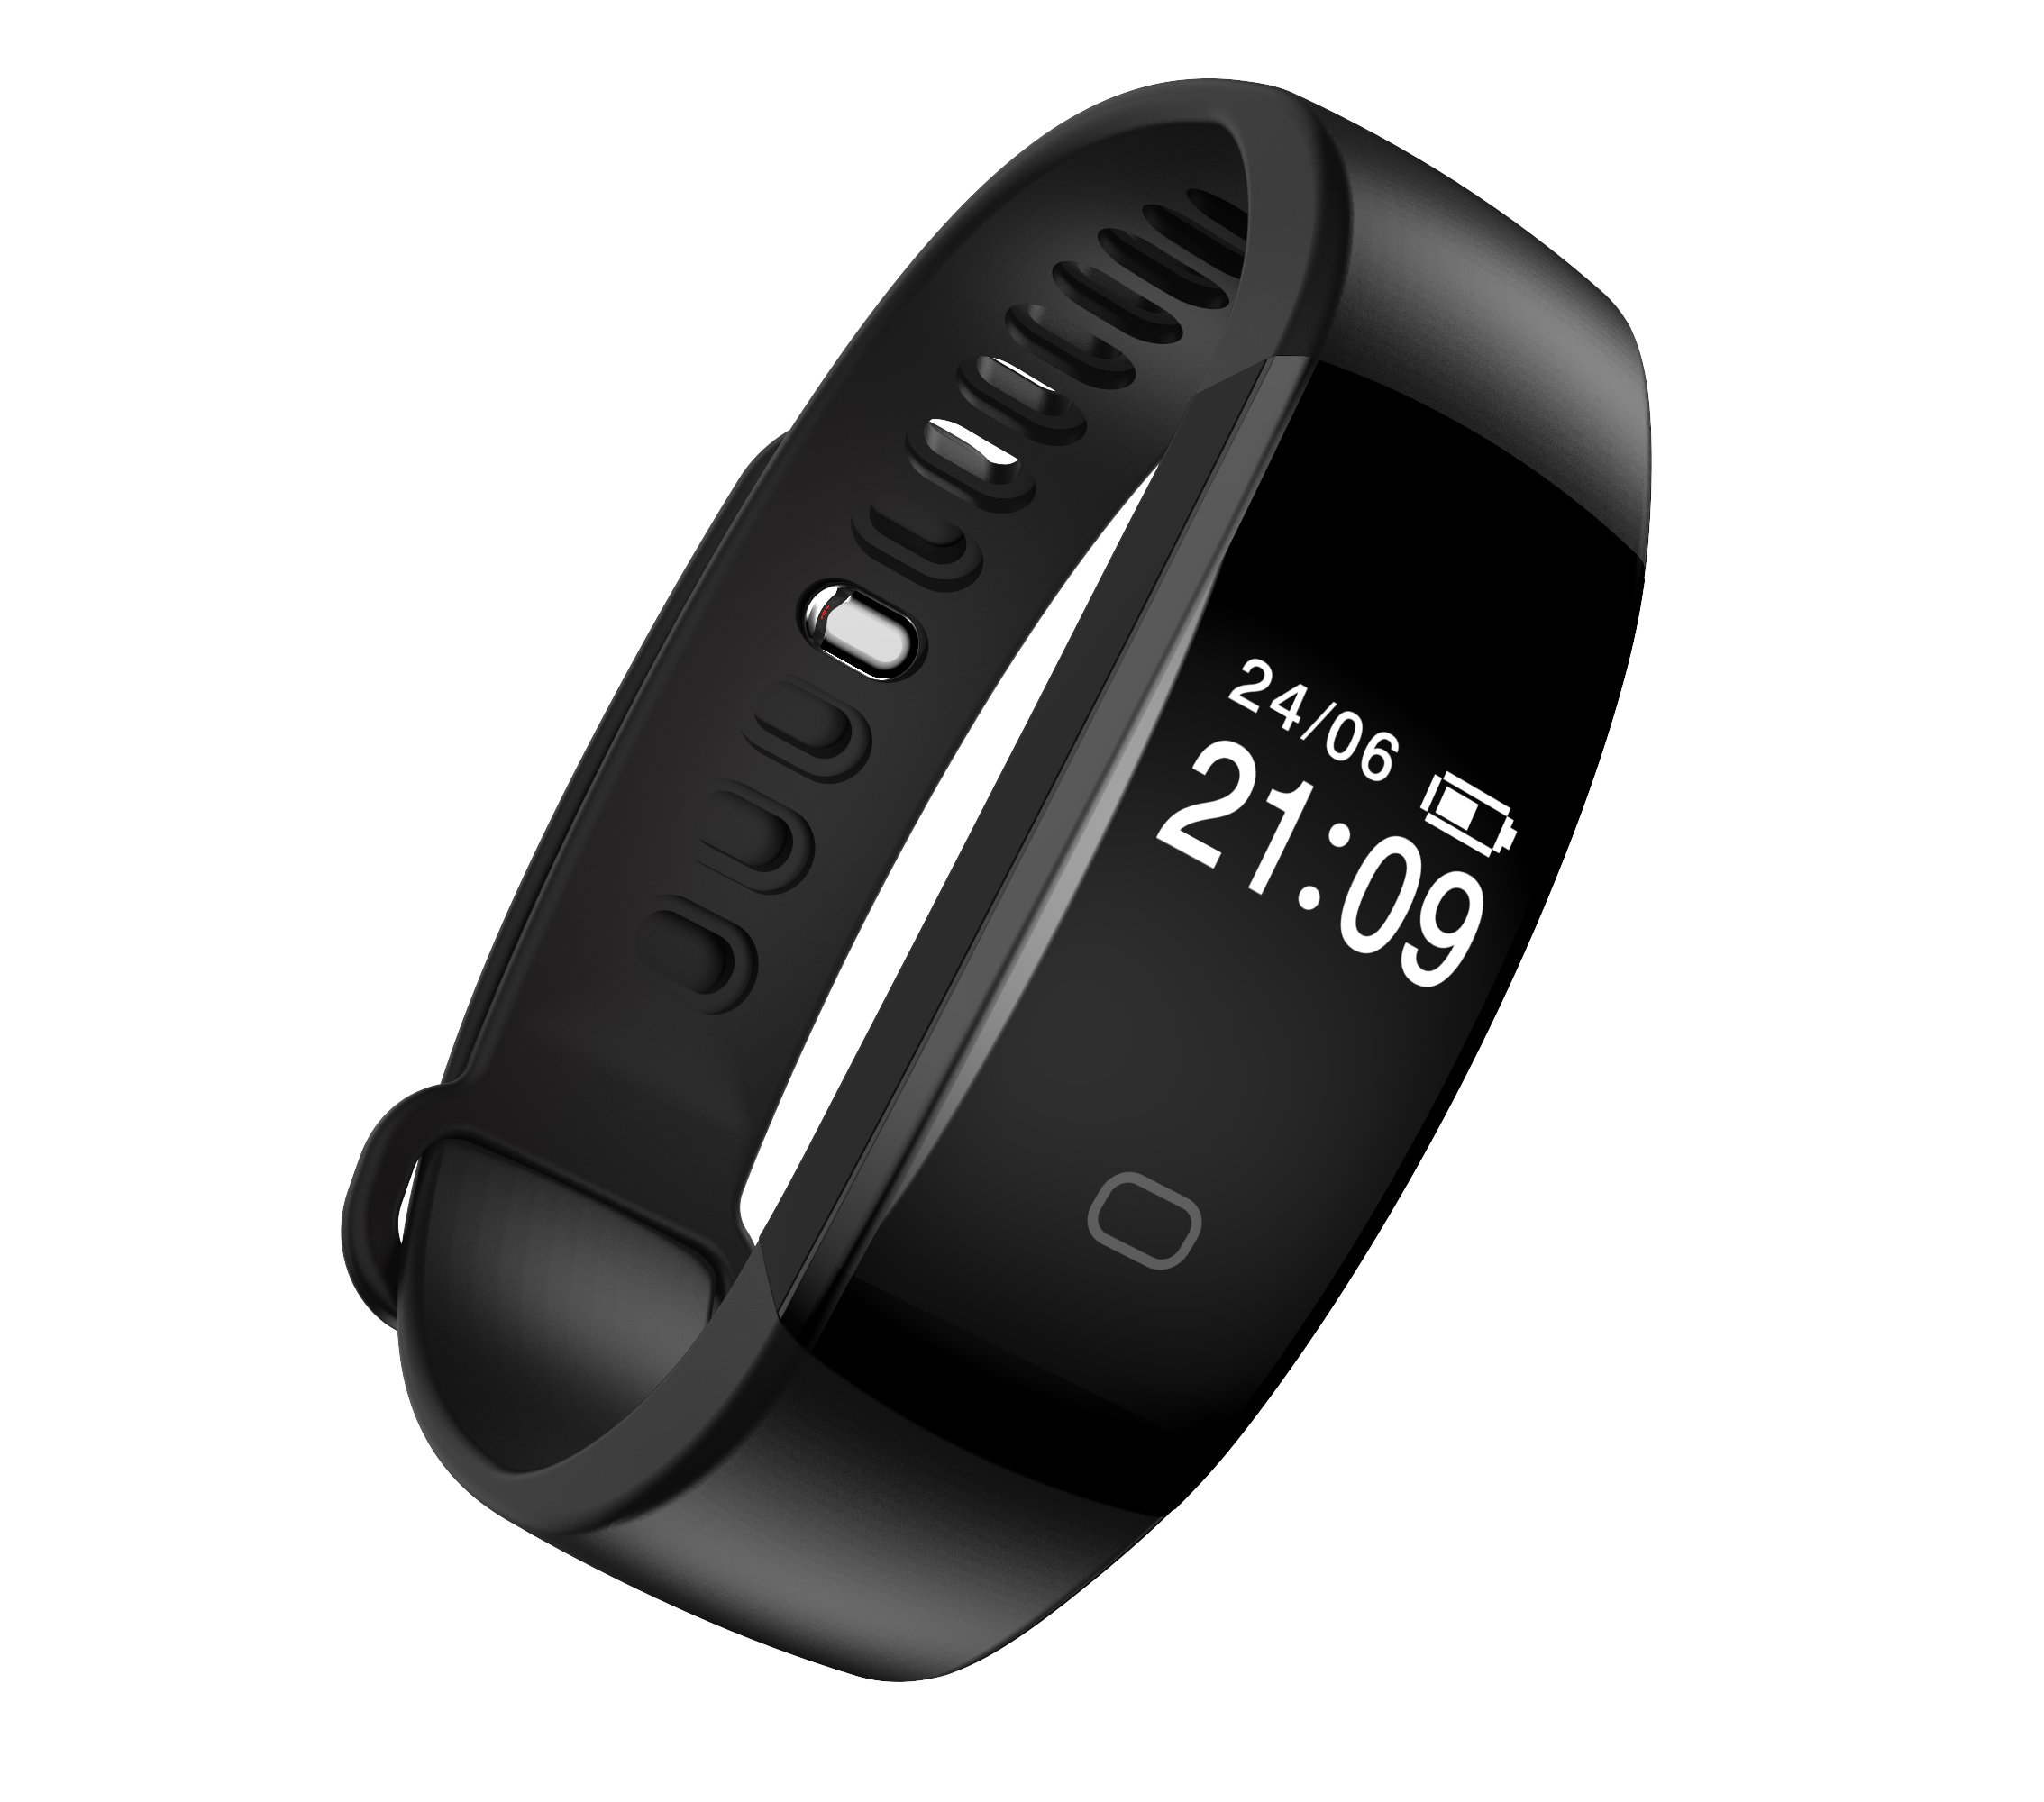 71hE6L8QhBL - Fitness Tracker Heart Rate Monitor Pedometer Smart Bracelet Bluetooth 4.0 Smart Fitness Band and Activity Tracker Smartwatch